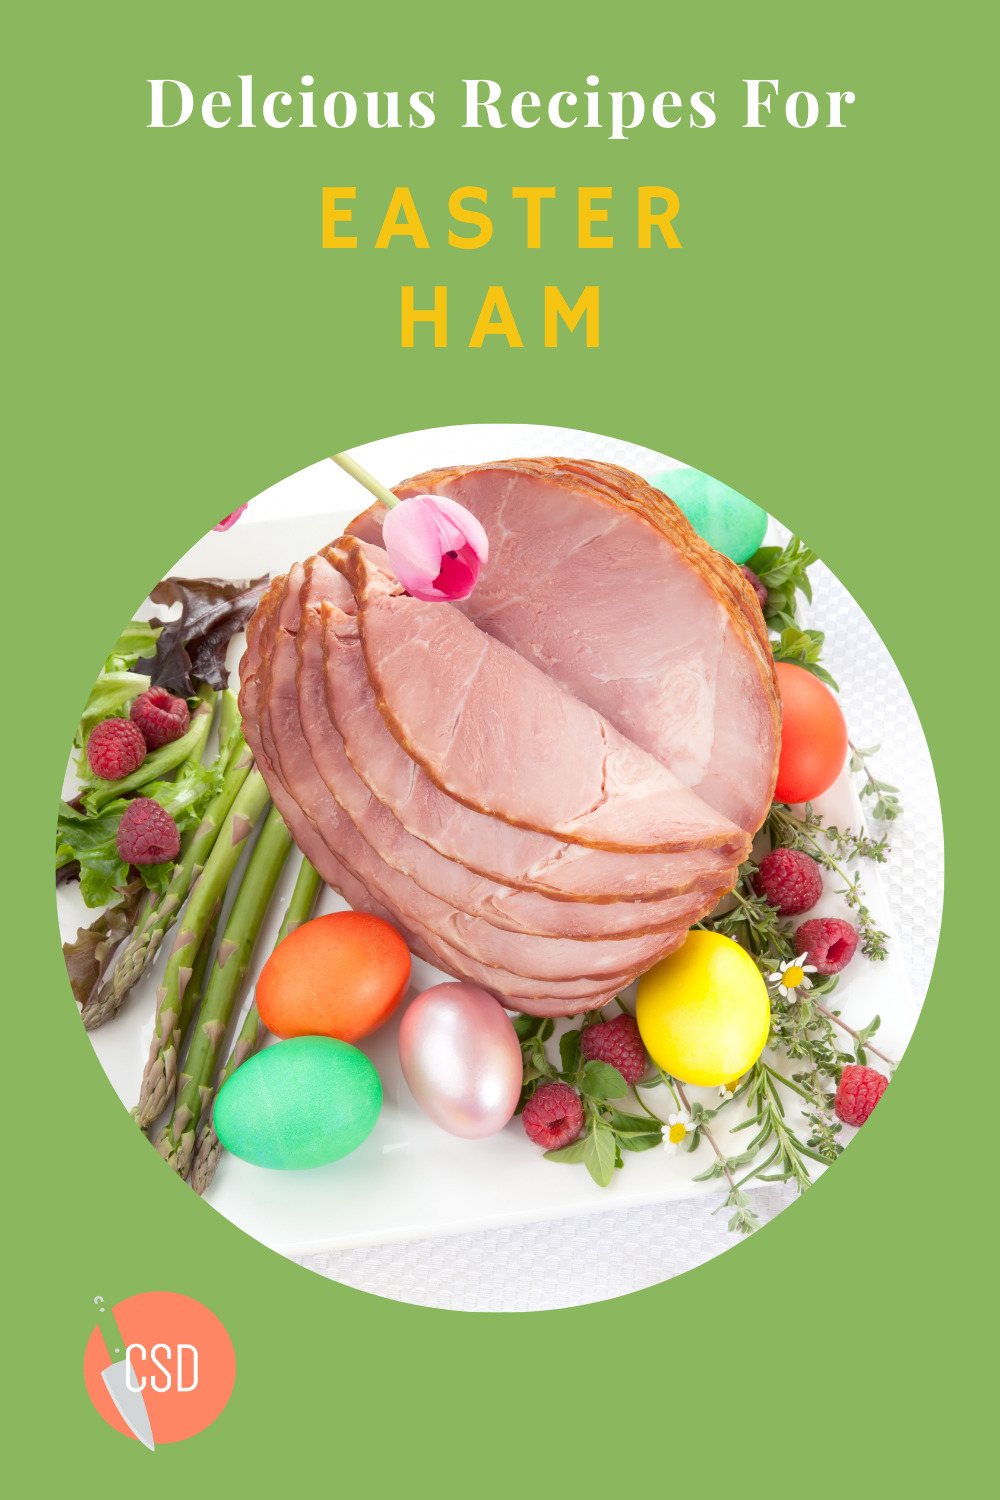 Cutsidedown.com is the best place to find easy recipes for delicious foods and beverages. Find the best dish to make no matter your skill level. Make this Easter unforgettable with an amazing ham recipe!